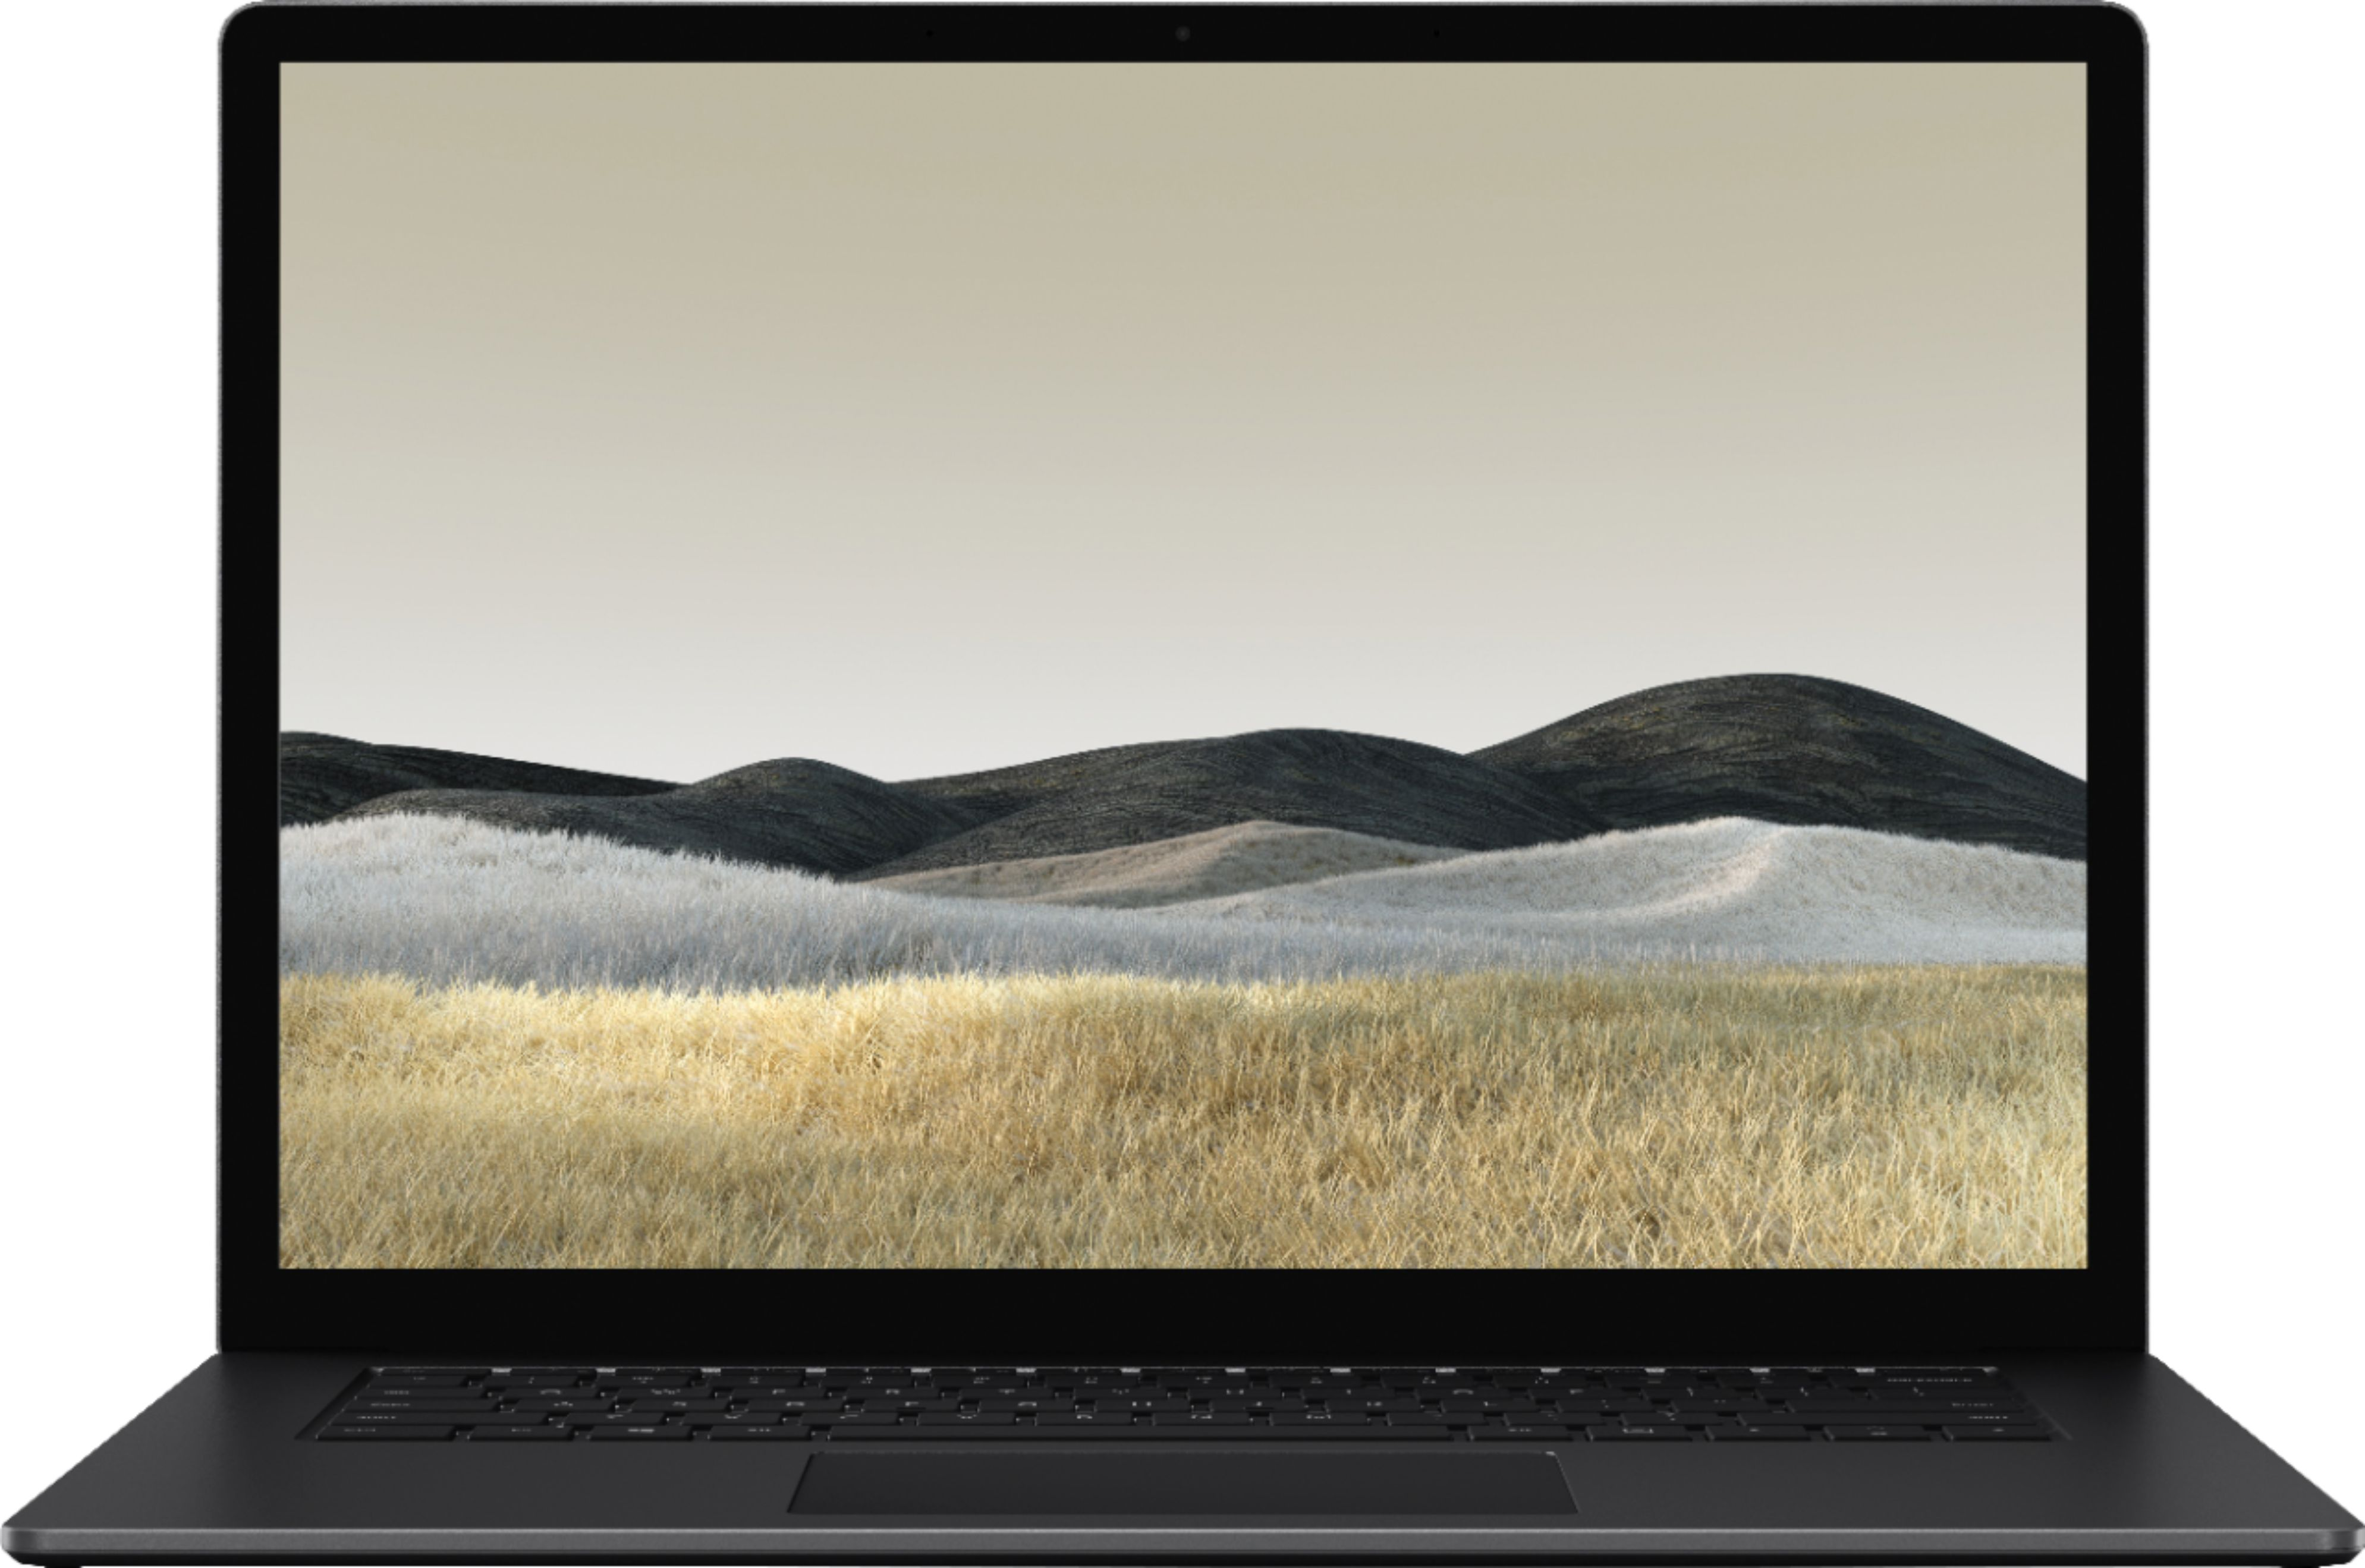 """Alt View Zoom 11. Microsoft - Surface Laptop 3 - 15"""" Touch-Screen - AMD Ryzen™ 5 Surface Edition - 16GB Memory - 256GB SSD (Latest Model) - Matte Black."""